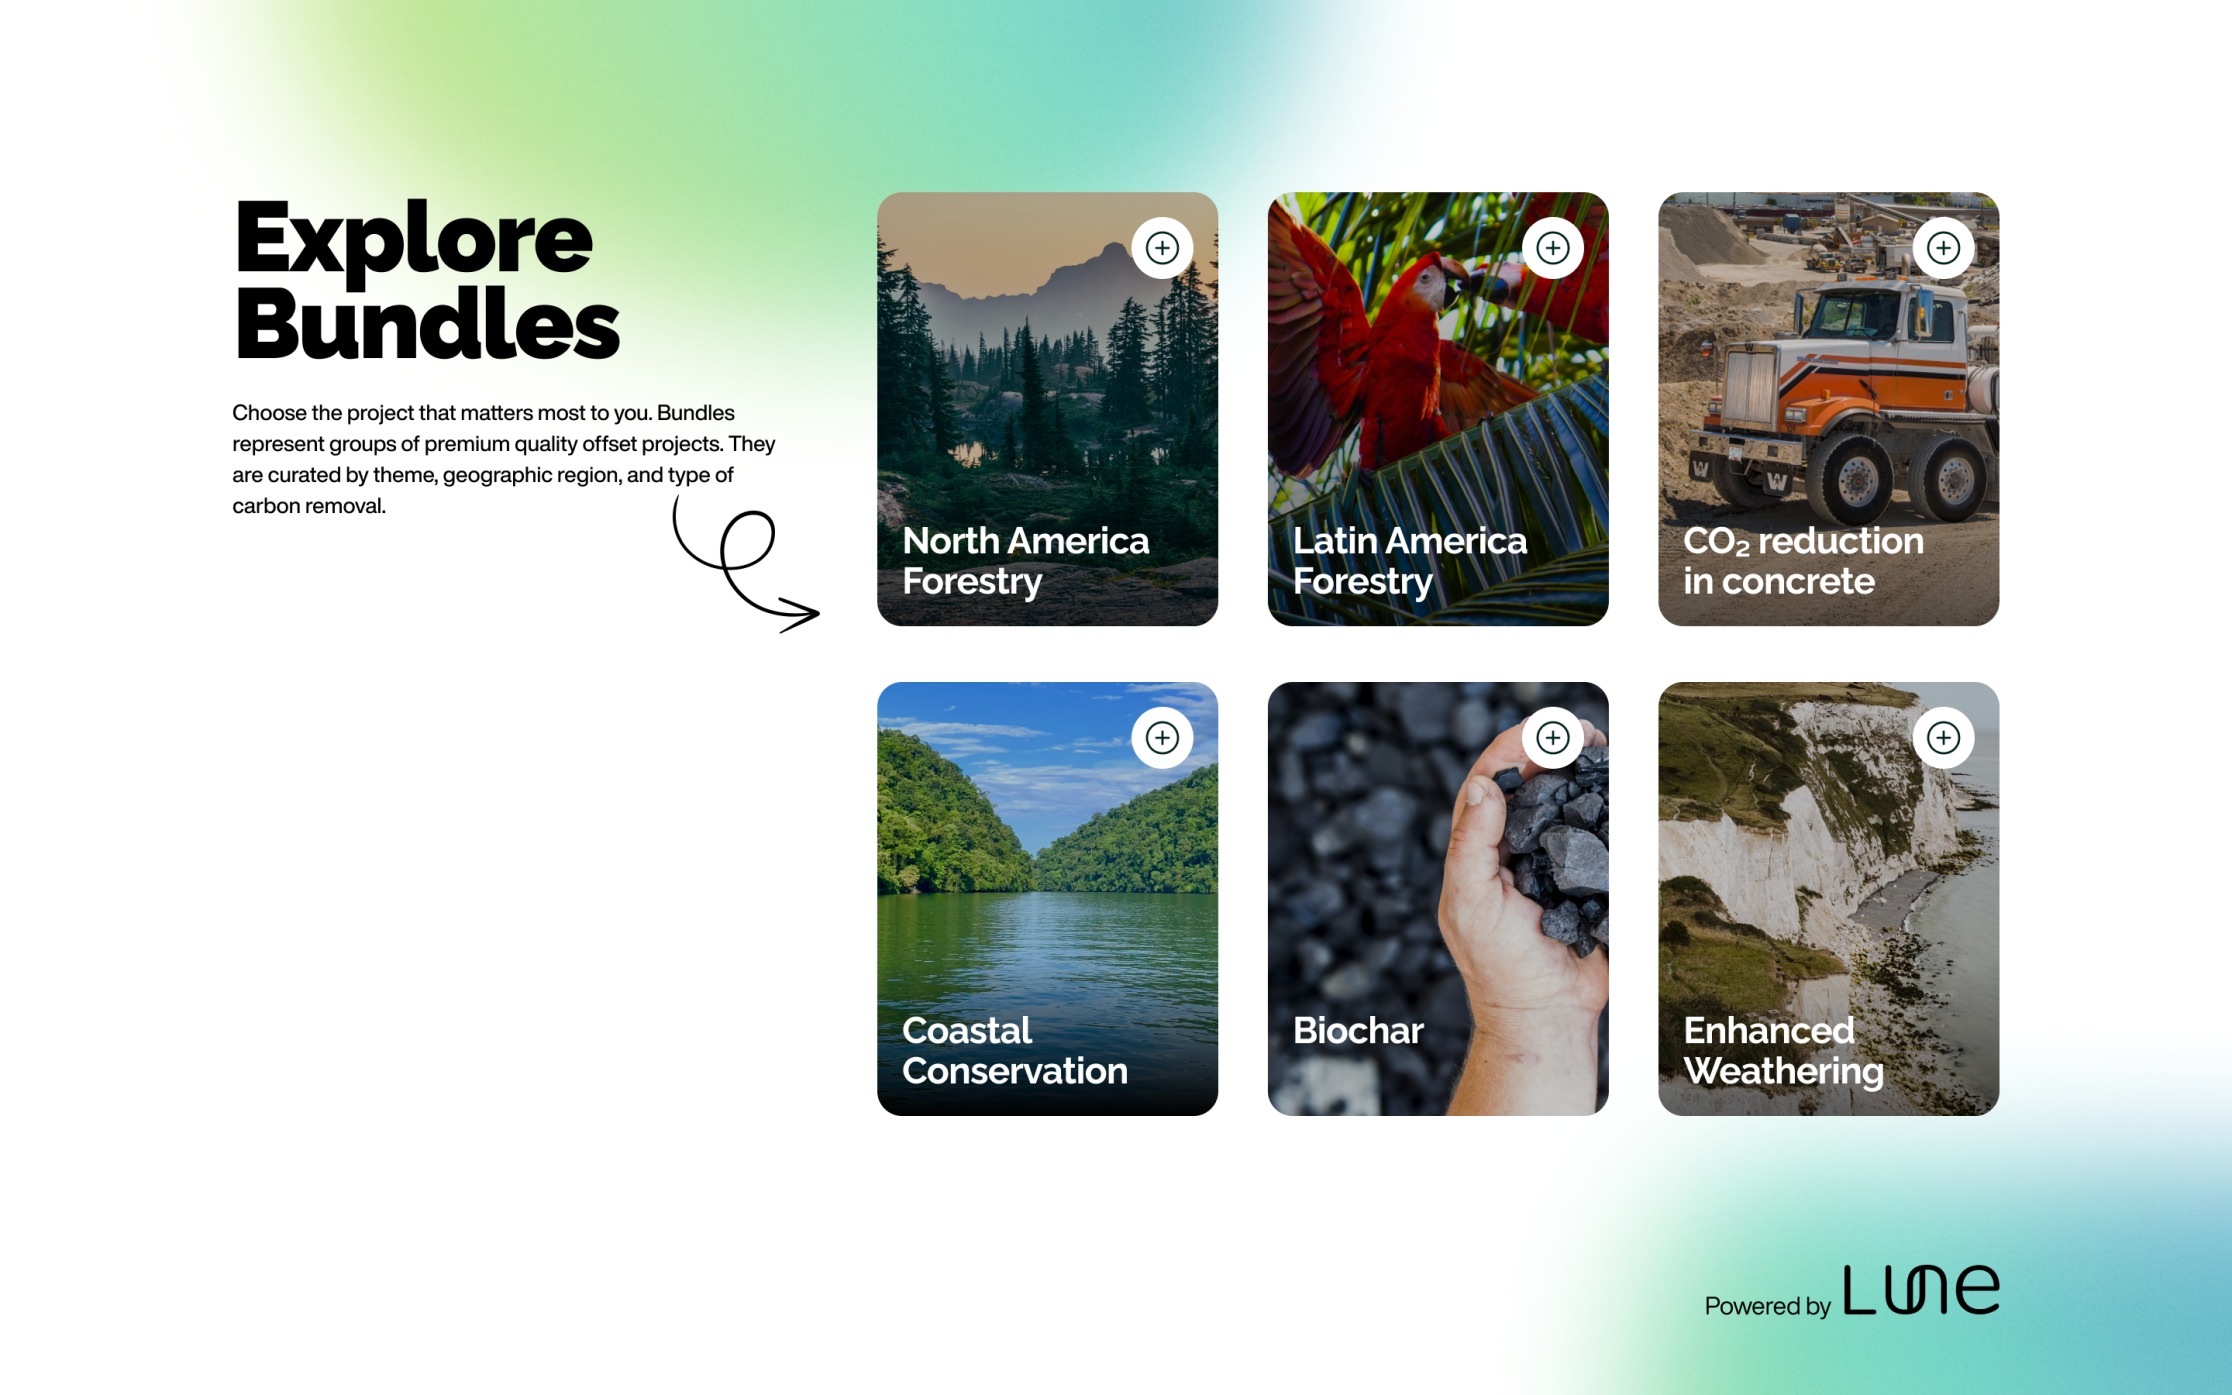 Carbon offset and removal projects curated by Lune